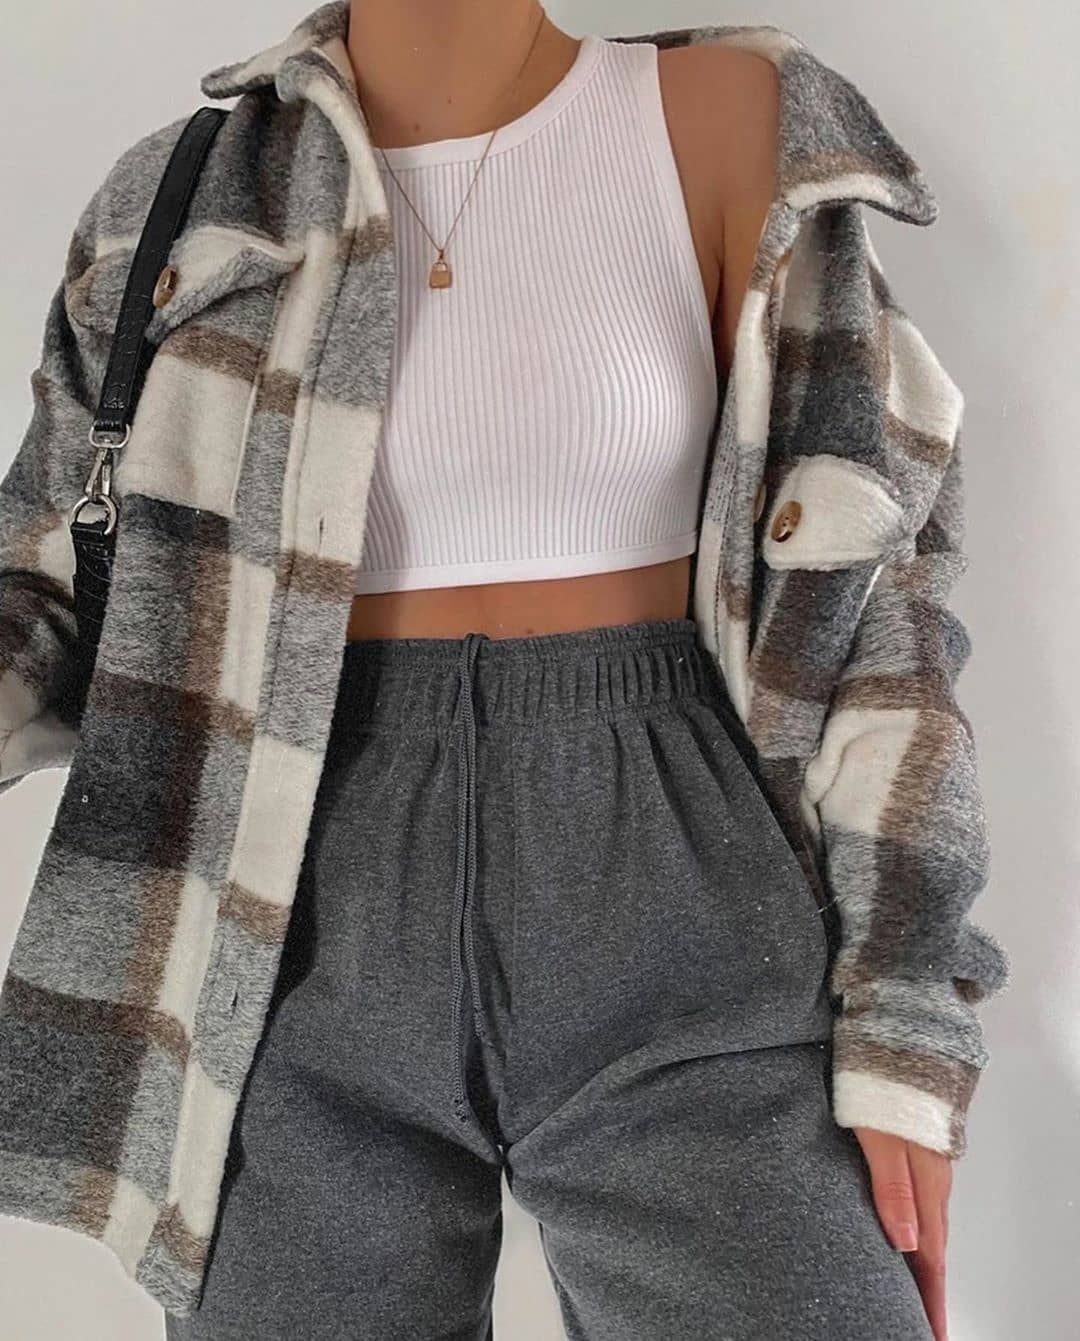 would definitely wear this if i had the pieces and the confidence.